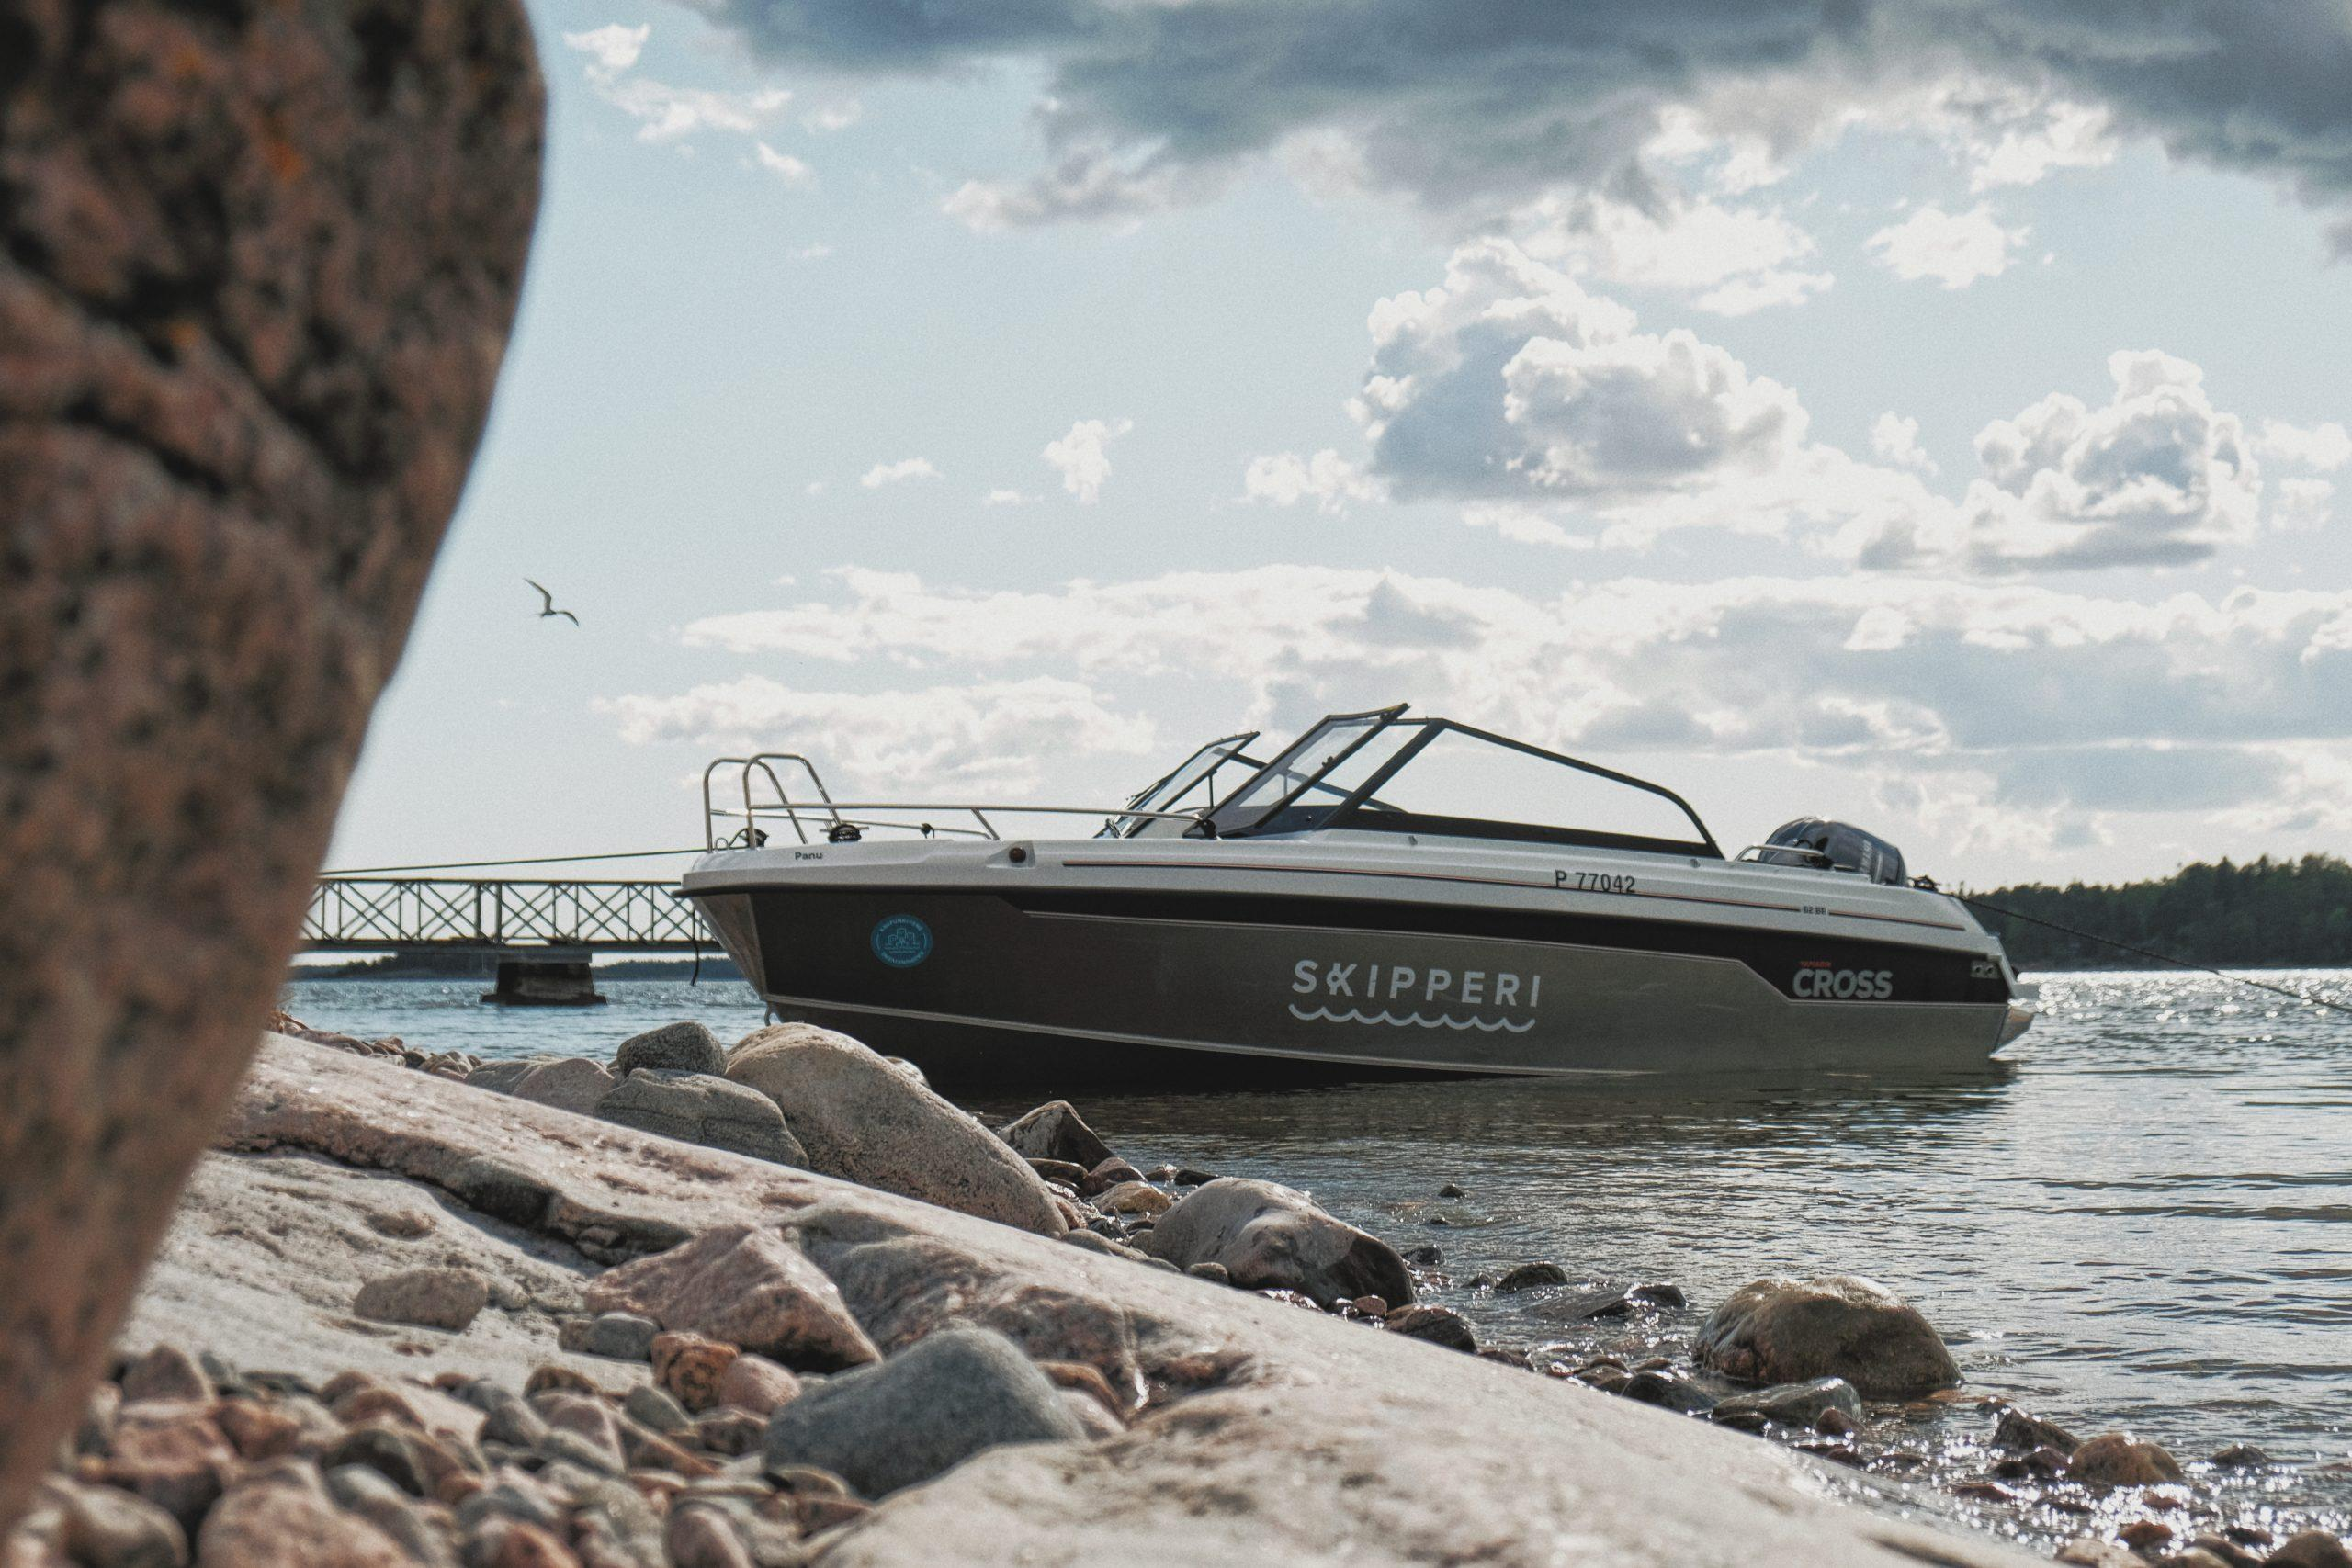 Q plotters in all Skipperi motorboats in 2020 – Smart boating for all